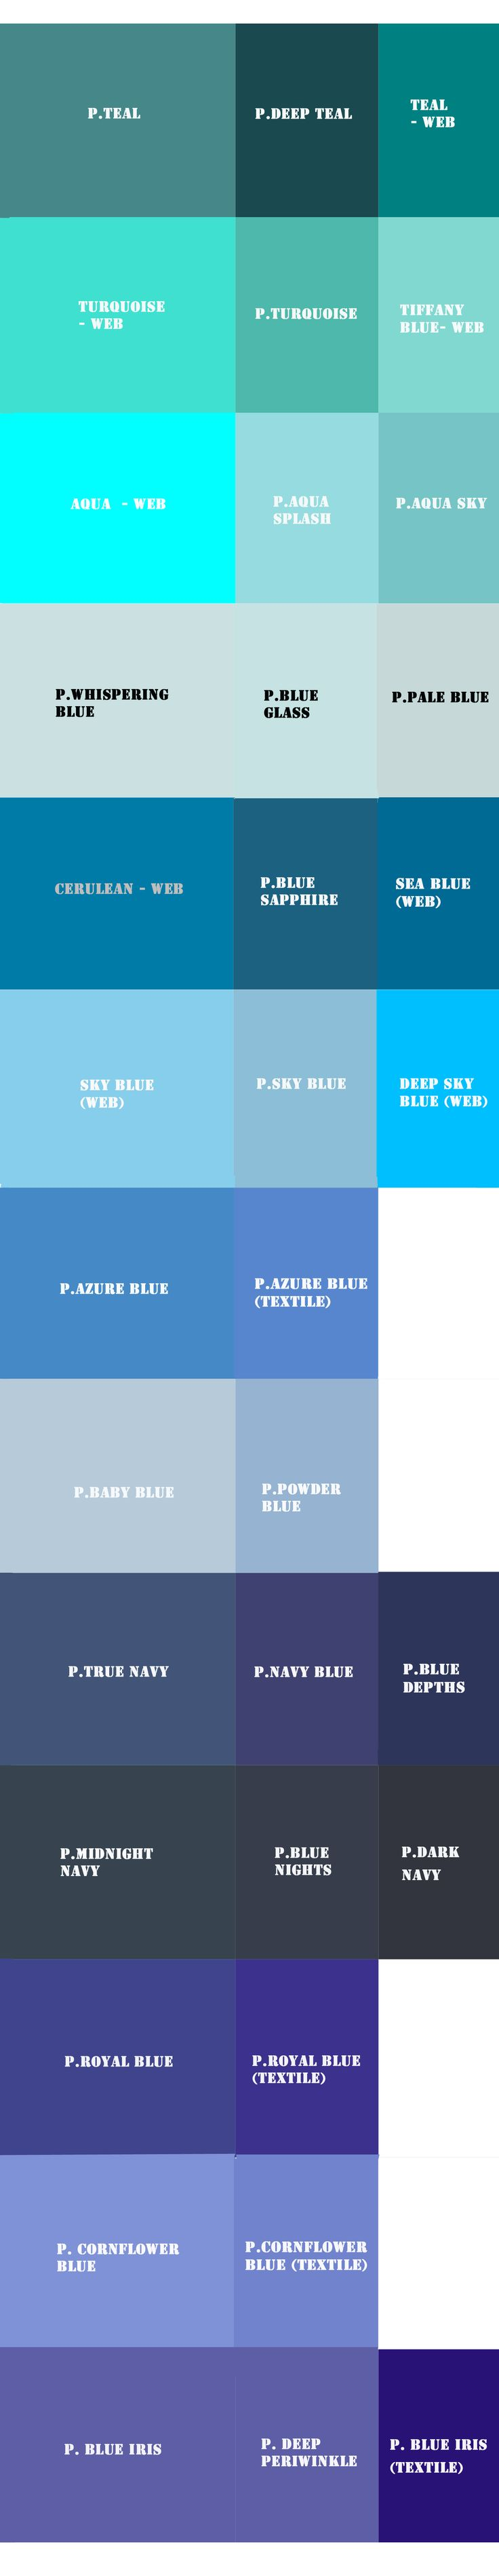 My BLUE Pantone (P.) and web color (web) references. By the way, the Pantone as well as the web colors are sometimes way off. Web colors (from Wikipedia) are quite reliable with their given RGB, HEX, HTML etc. values and are not to be dismissed. ♔THD♔